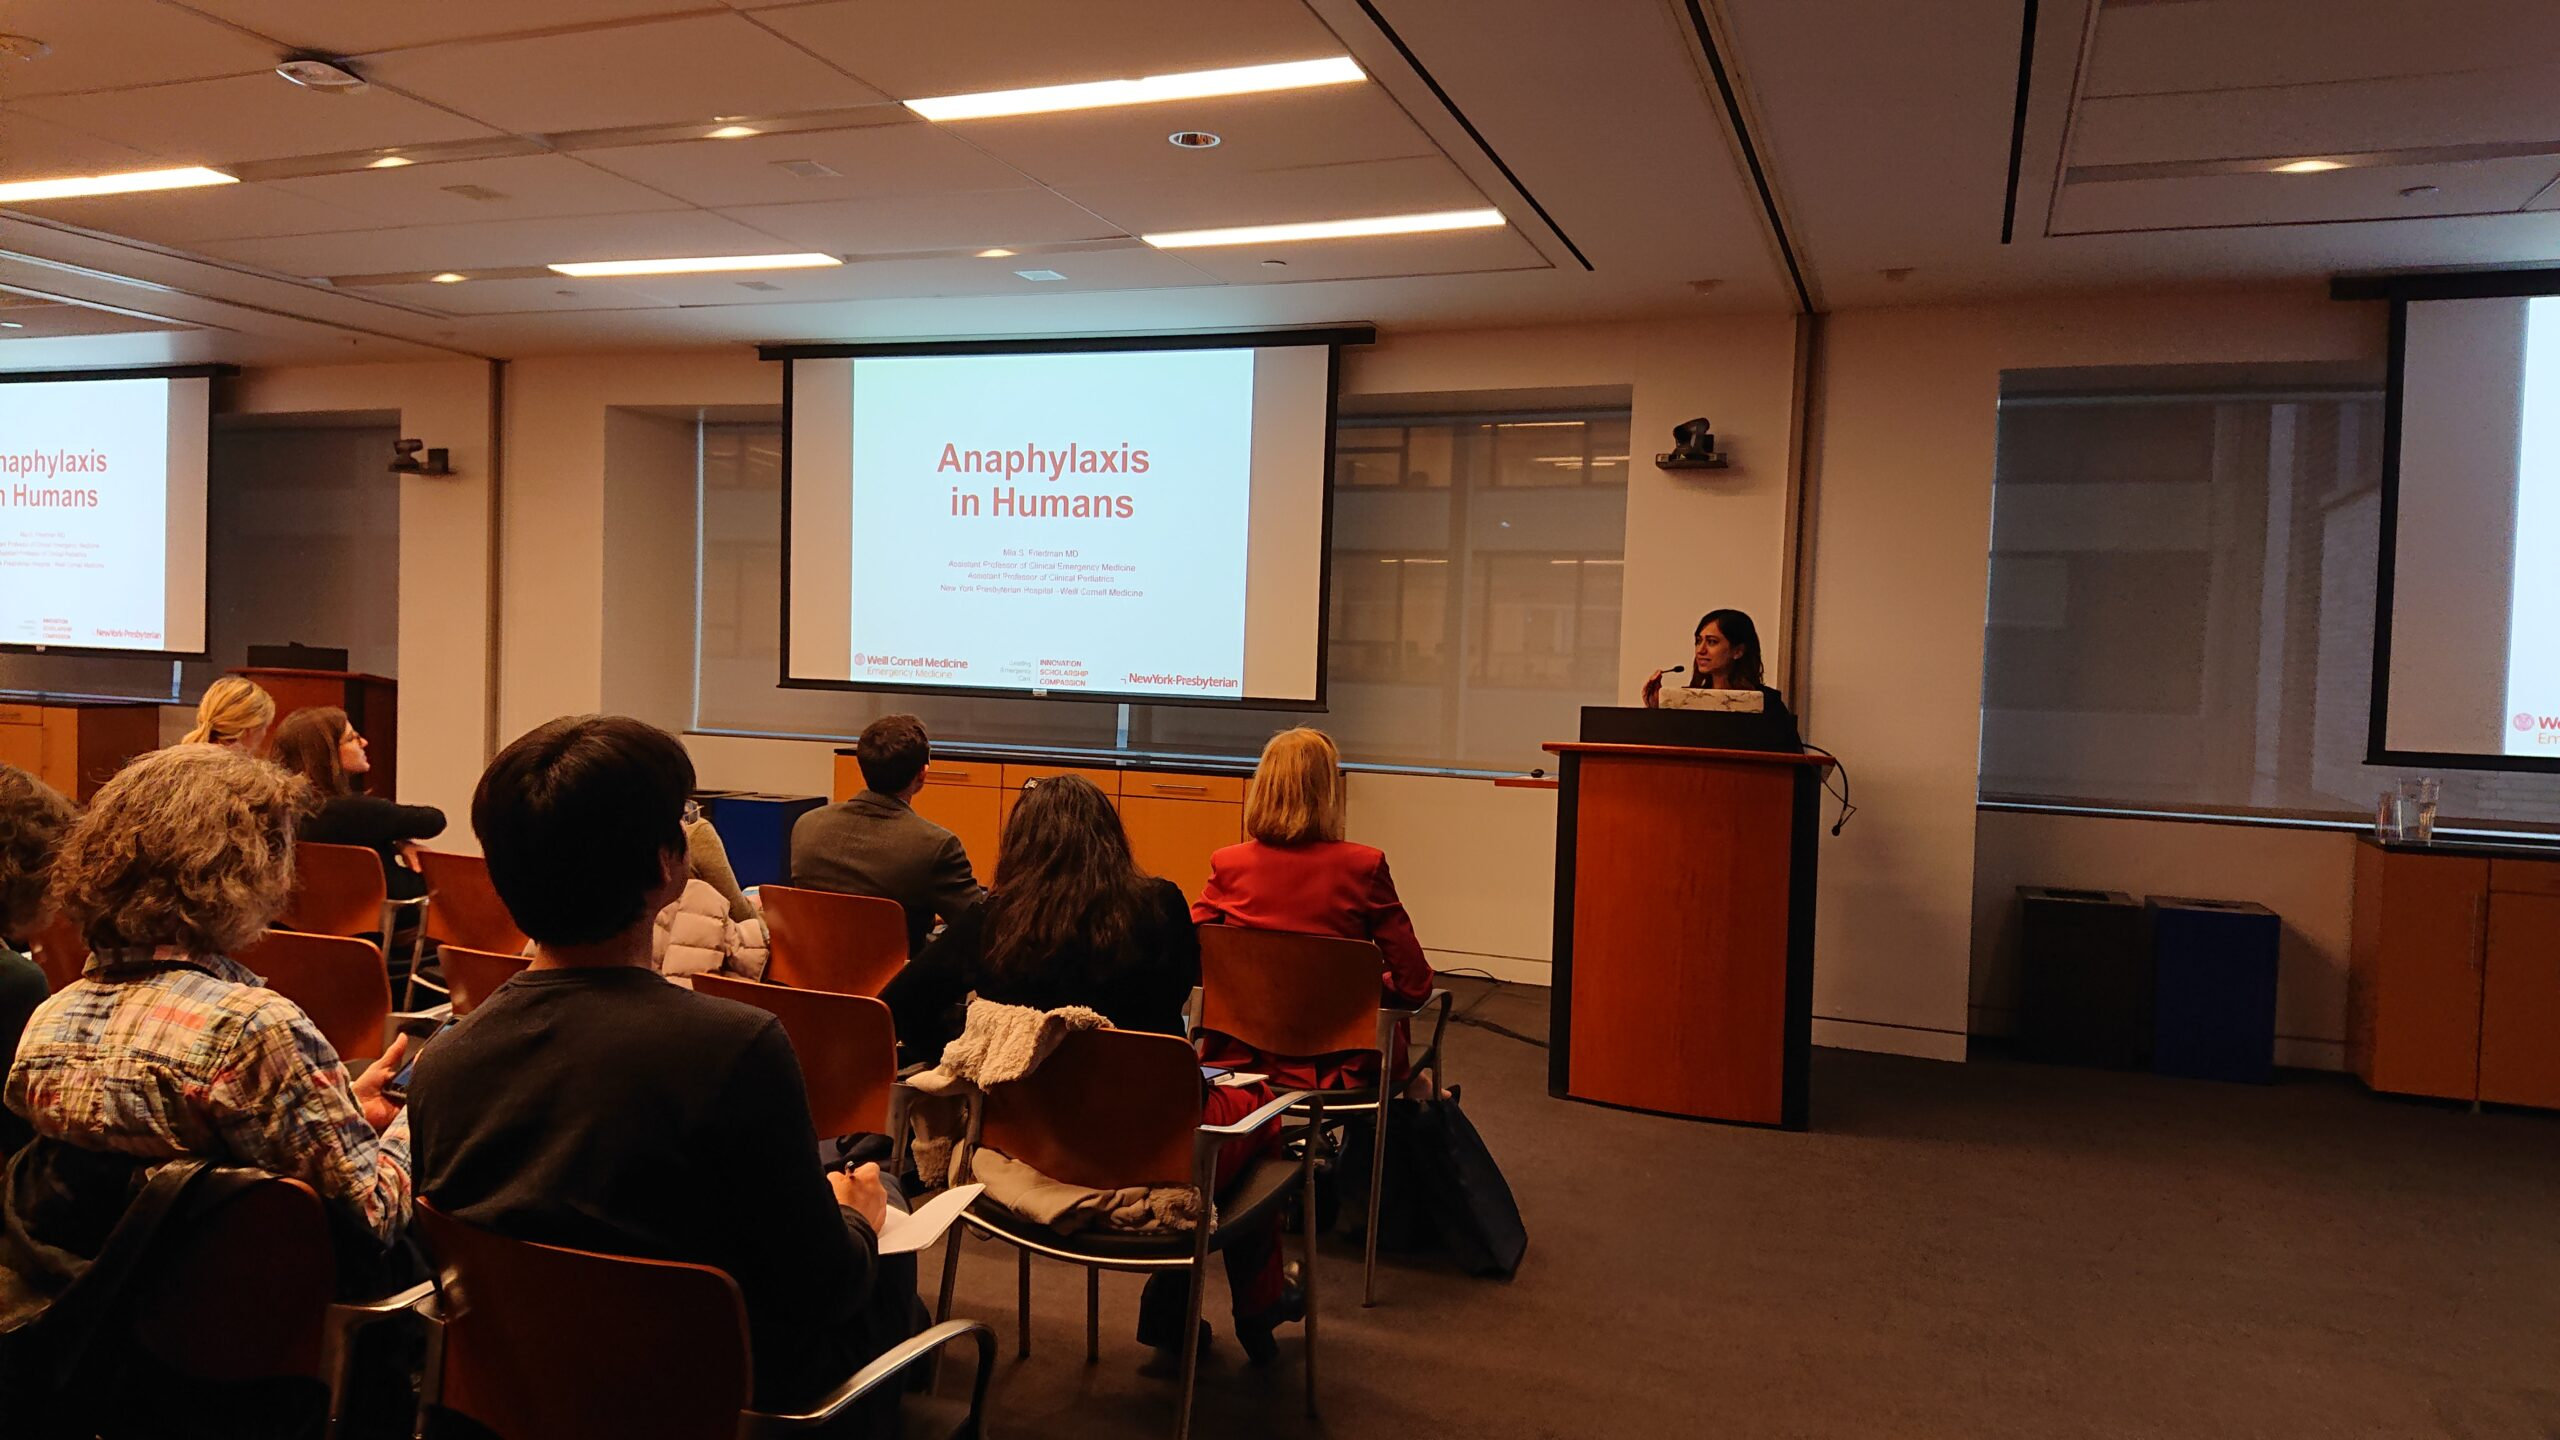 Dr. Friedman at the podium speaking on anaphylaxis in humans